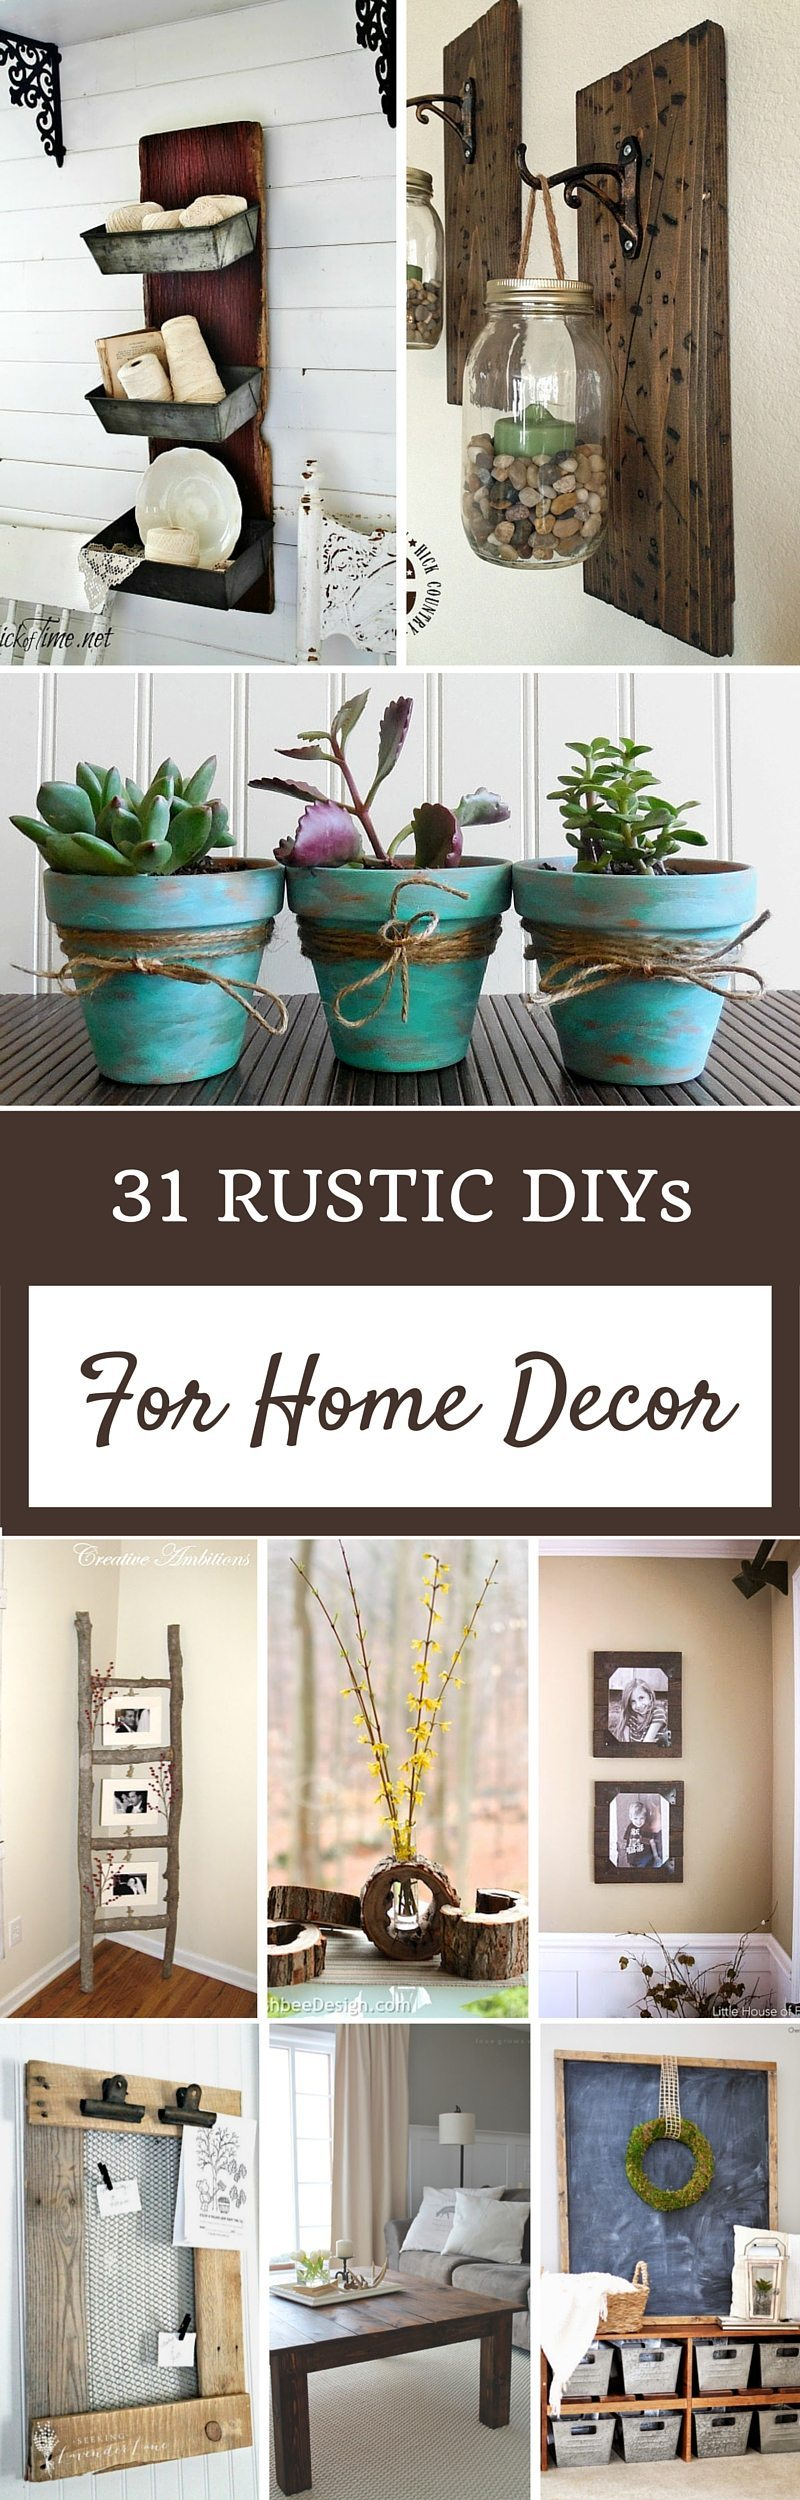 Rustic home decor ideas refresh restyle Diy home interior design ideas